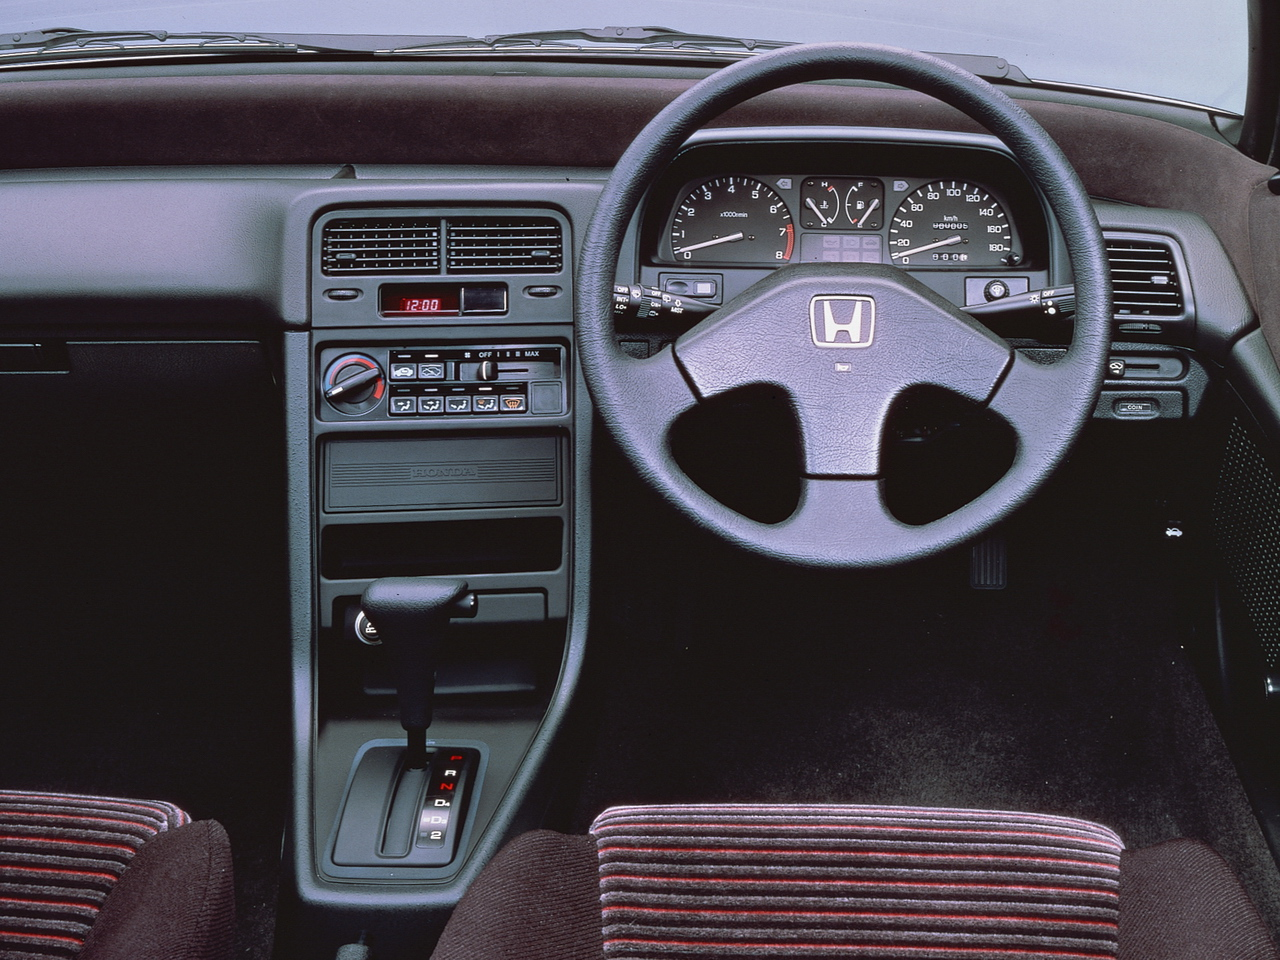 Honda CR-X SiR 3 Door Hatchback 1991